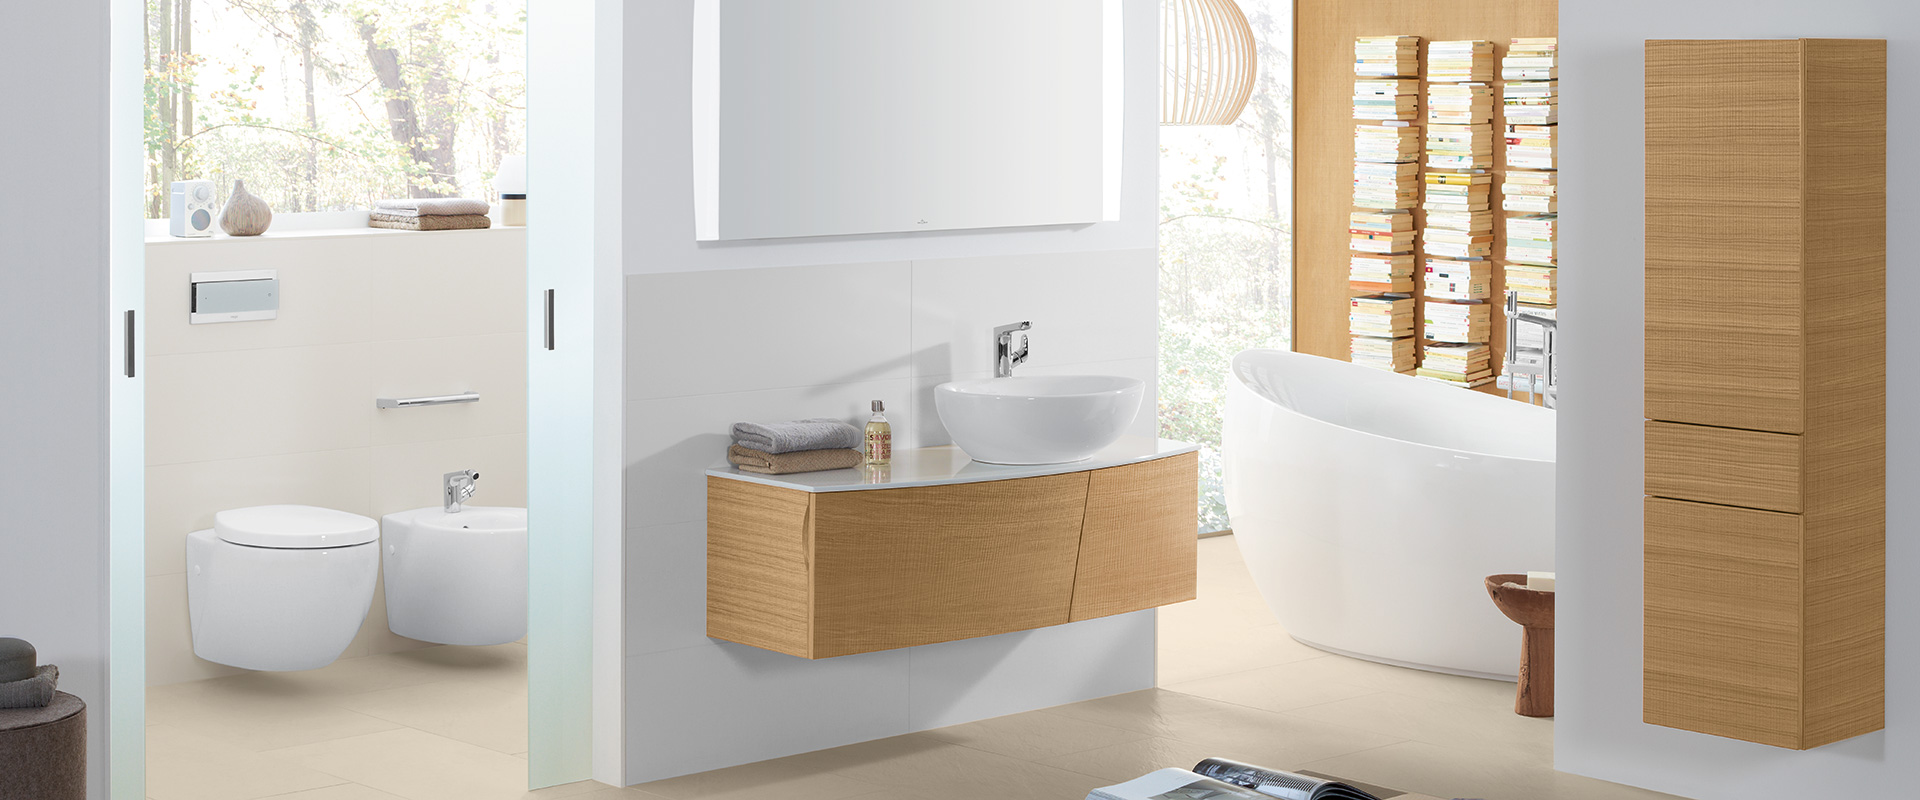 Aveo new generation collection by Villeroy & Boch - Natural